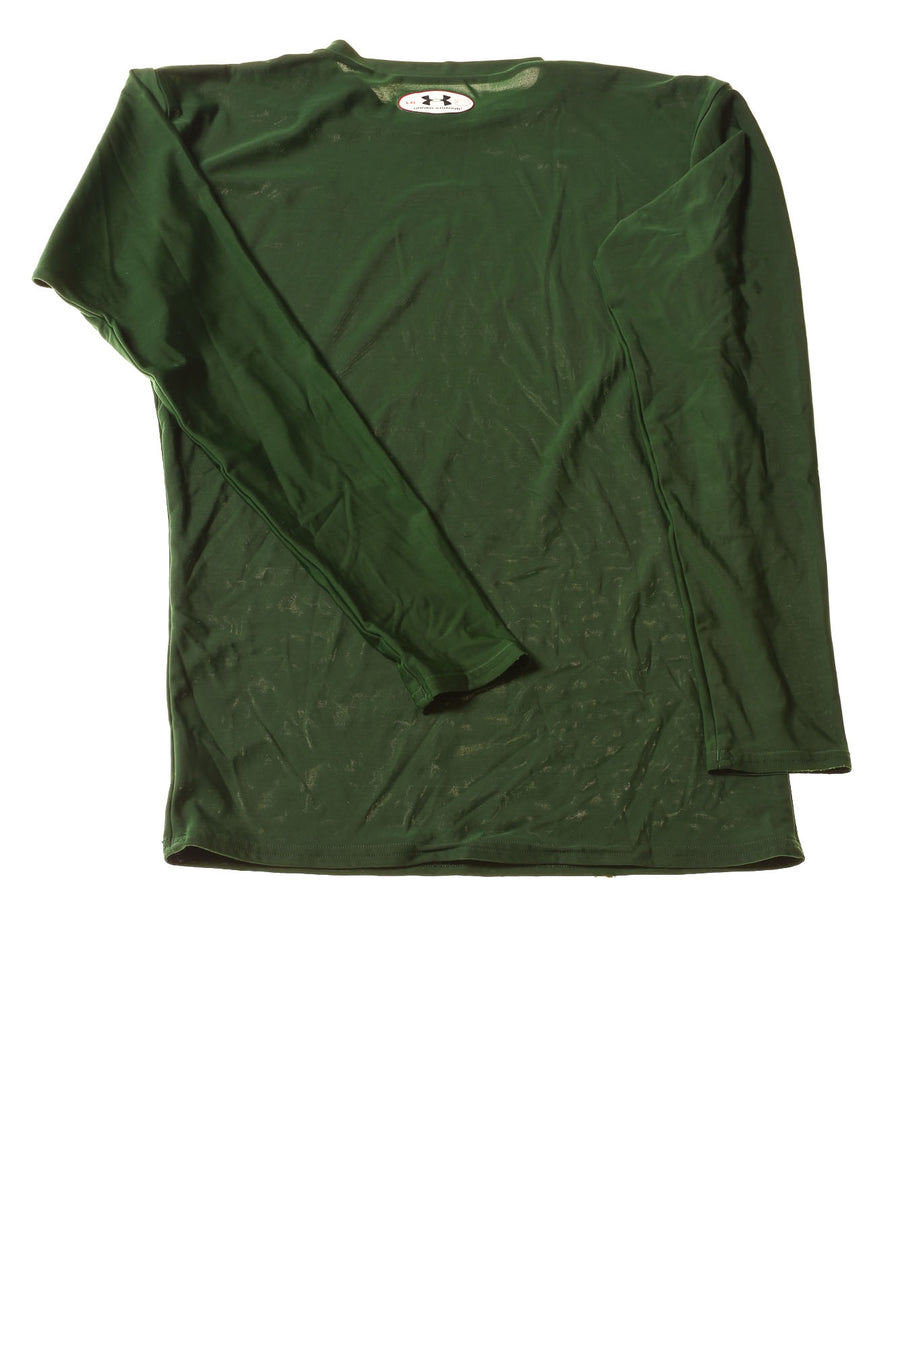 USED Under Armour Boy's Shirt Large Green